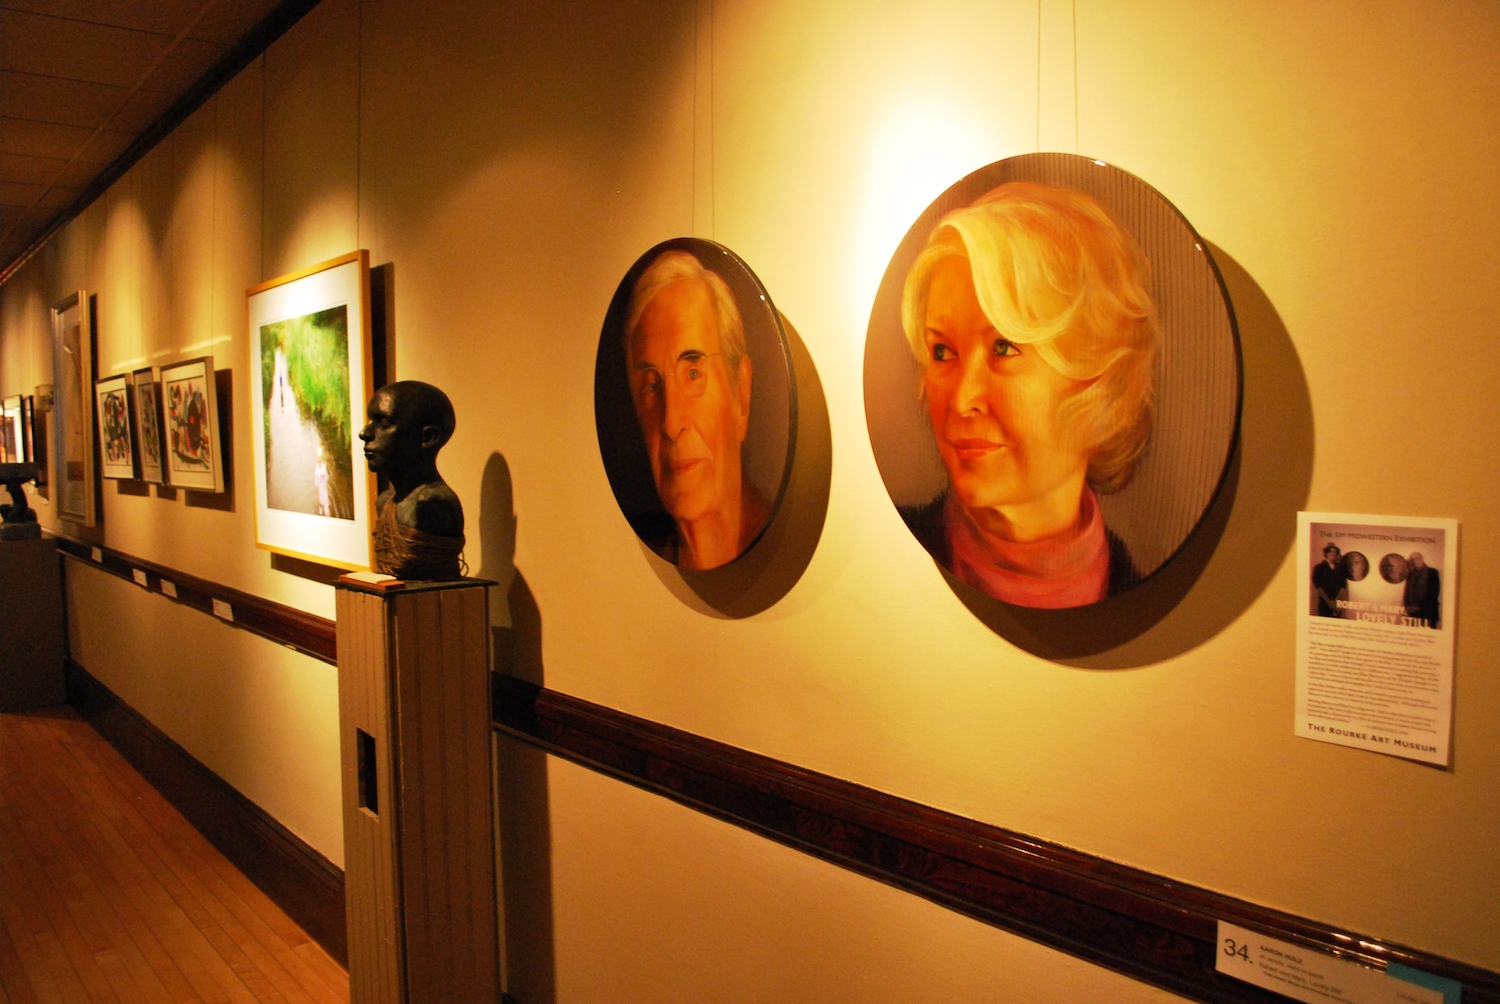 (Fig. 5)  While these are paintings rather than photos, they illustrate how paired portraits can create an attractive interpersonal aura that will connect with many viewers. Photo by  Fargo-Moorhead CVB via Flickr , used under Creative Commons.